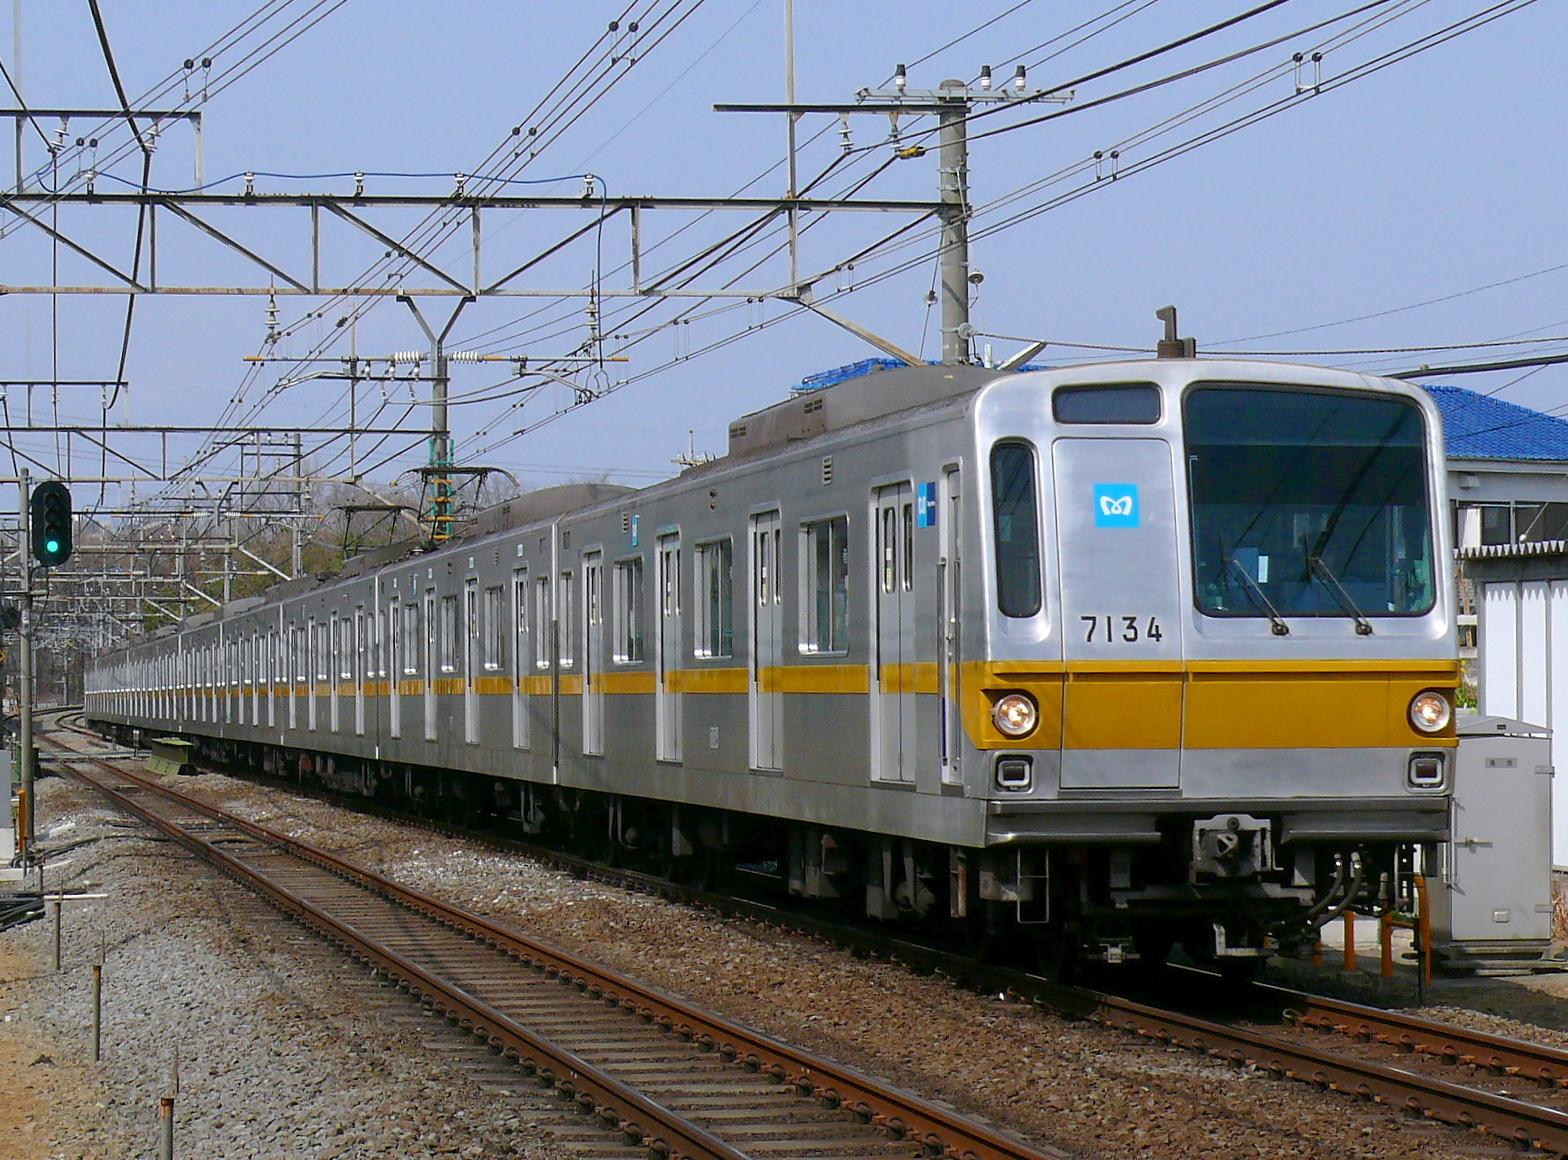 https://upload.wikimedia.org/wikipedia/commons/7/78/TokyoMetro_Type_7134.JPG